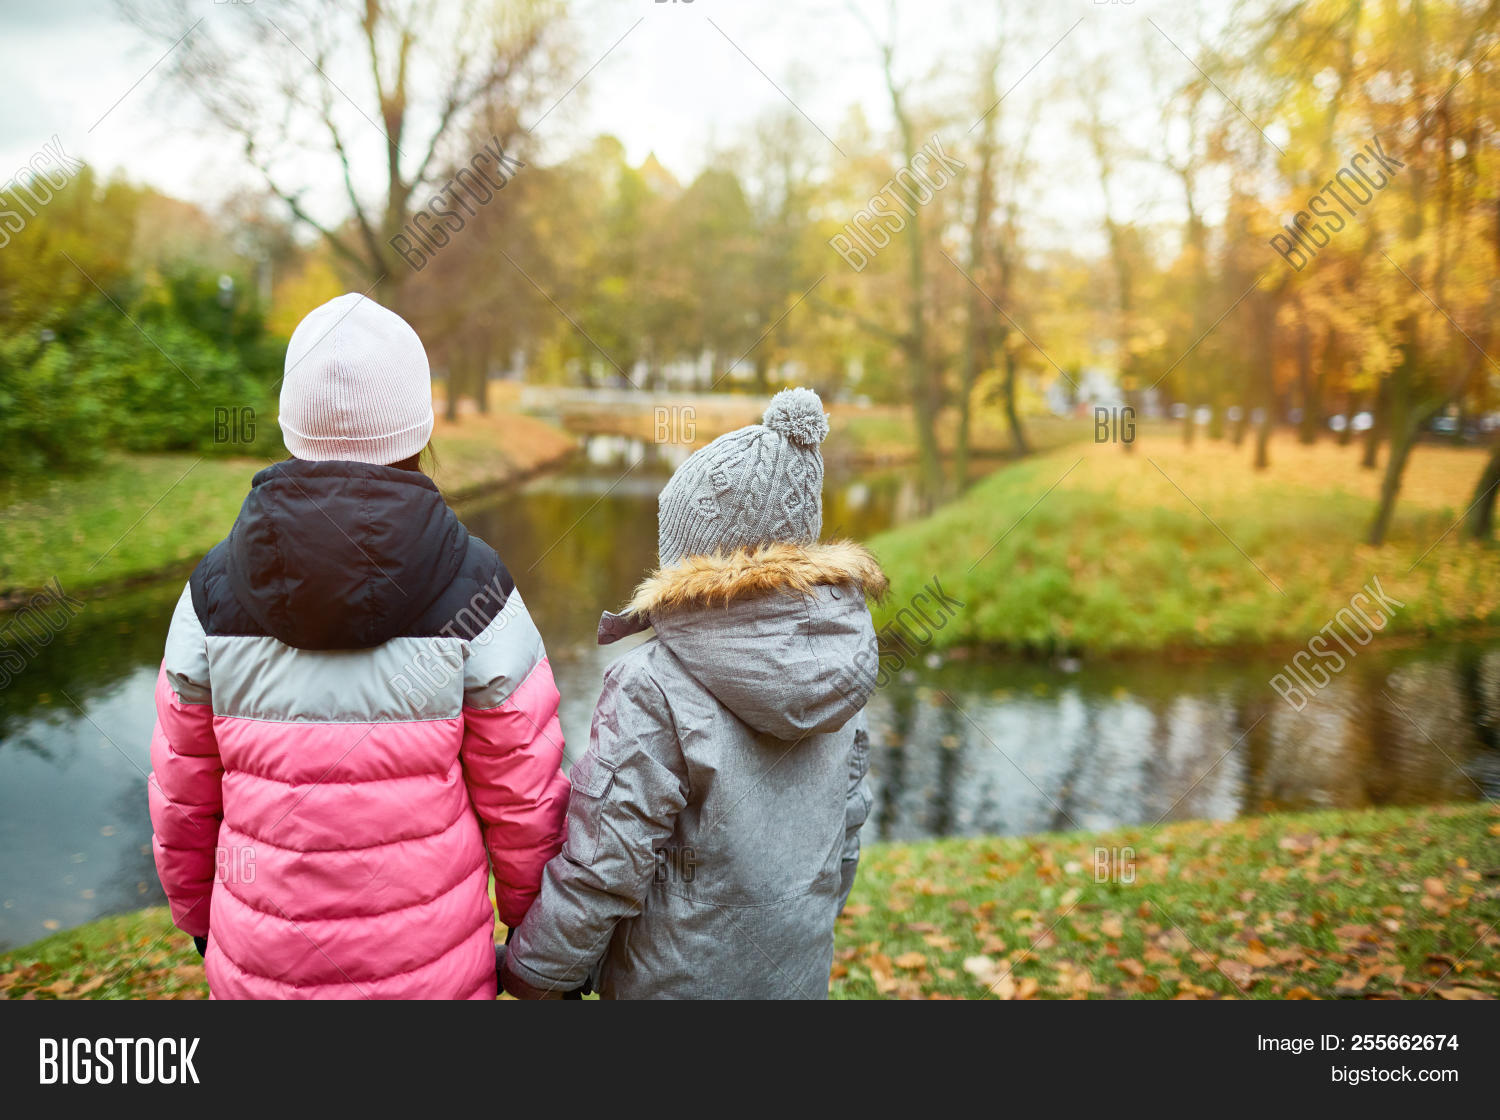 2e12c18bb52 Back view of two school friends in warm jackets and beanies holding by  hands while standing